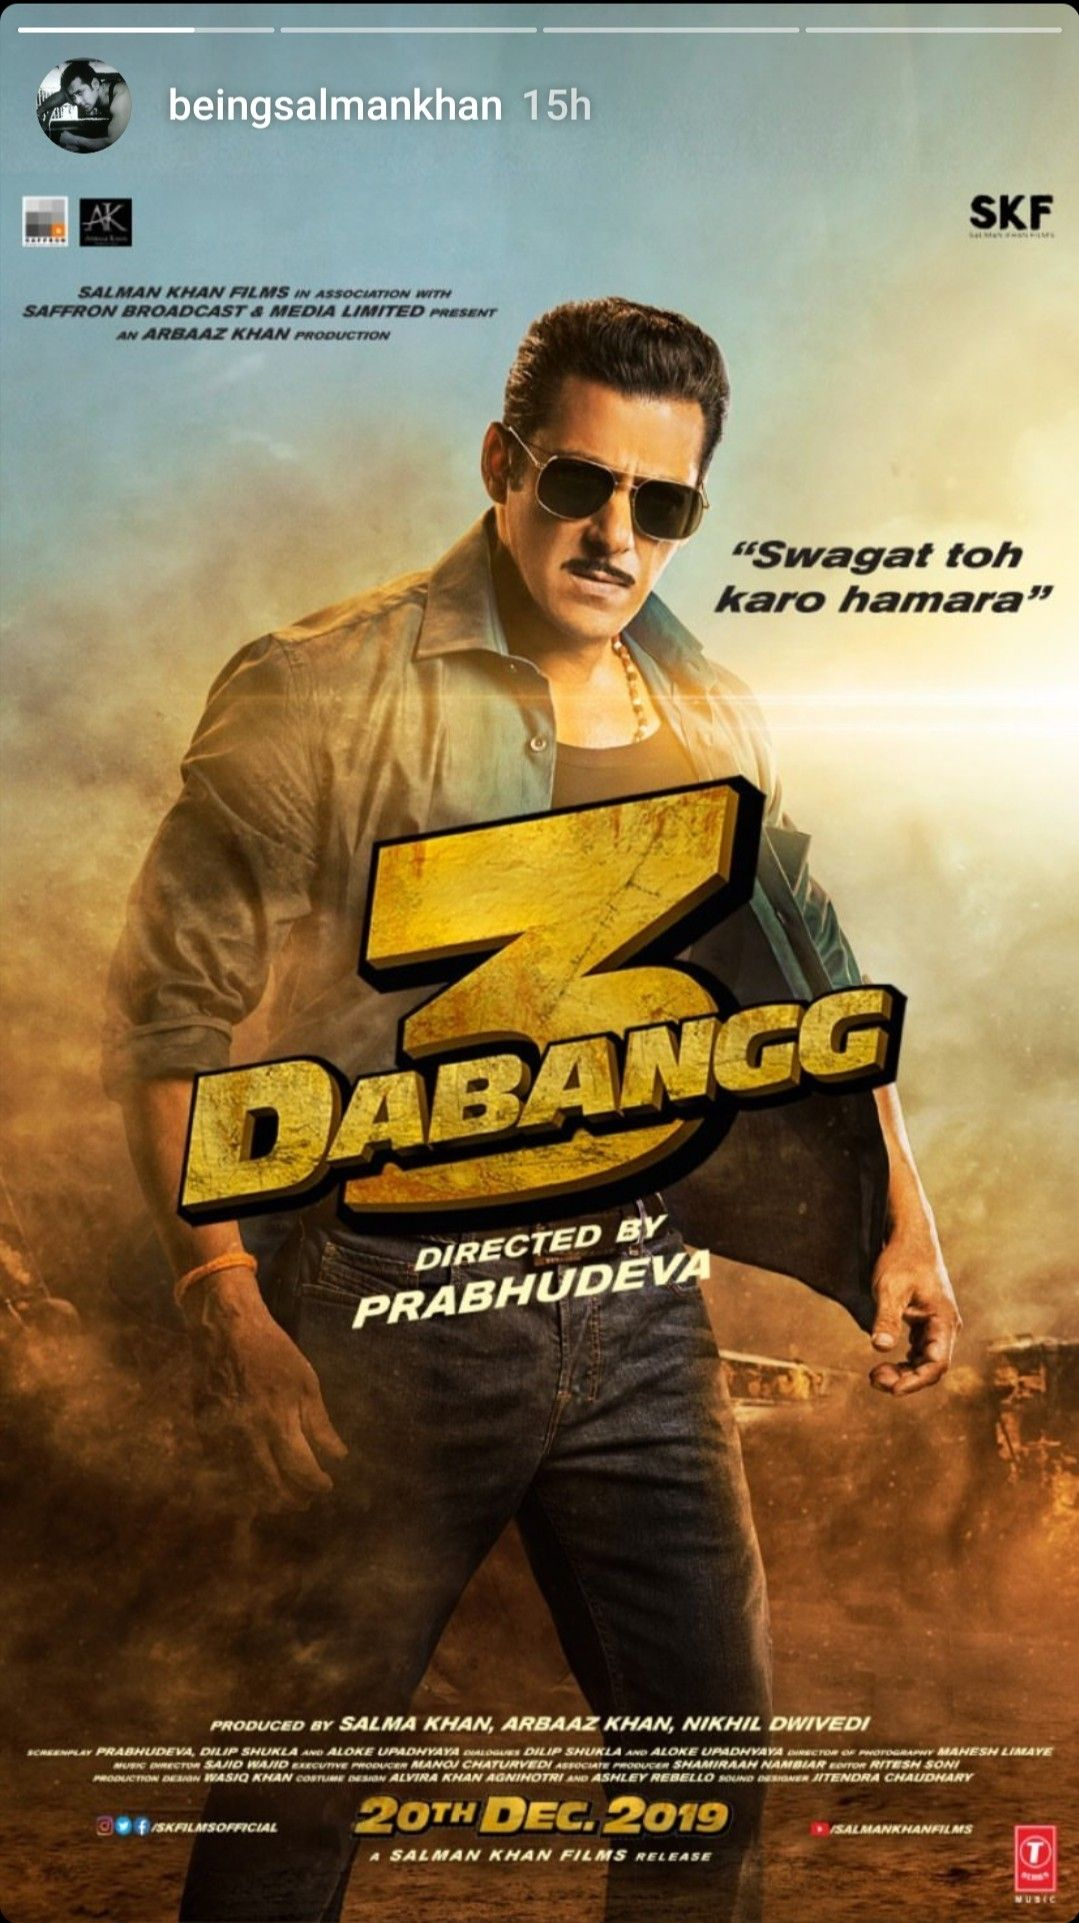 Pin By The Existed Guy On Salman Khan Hindi Movies Movie Ringtones Download Movies